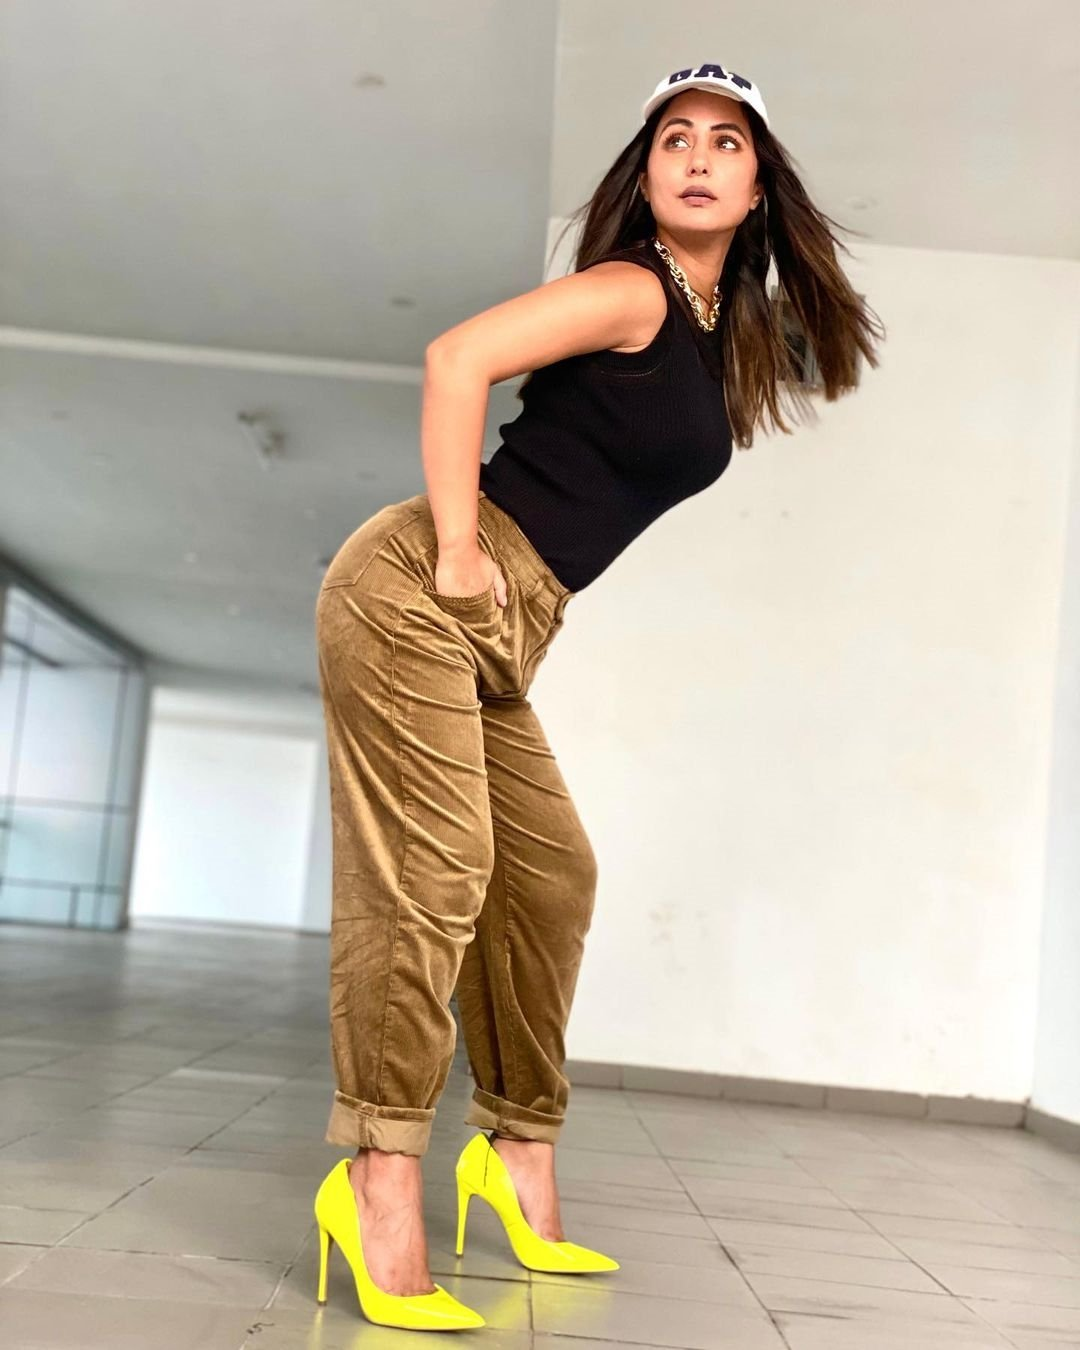 Bollywood Actress New Images In Stylish Look